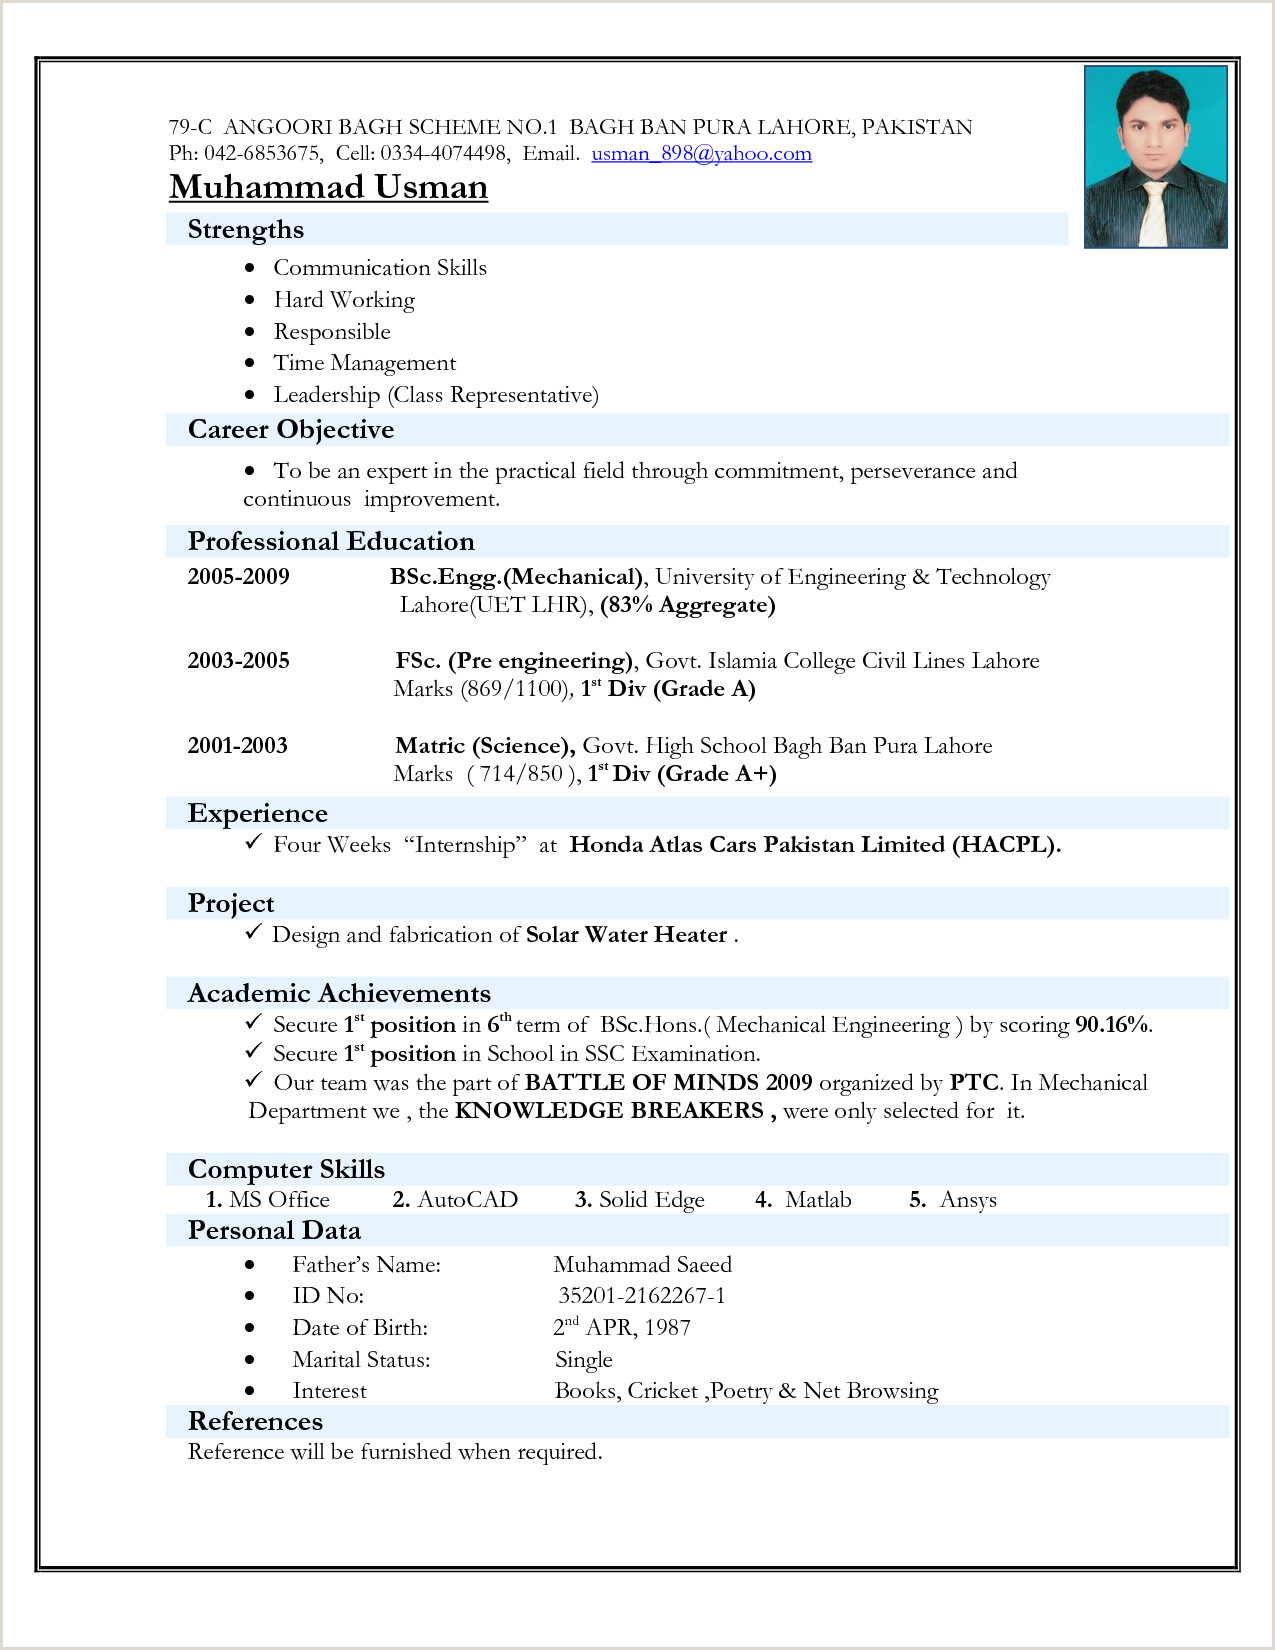 Fresher Resume Format Civil Engineer Pin By Aa Abhimanyu On Resumes